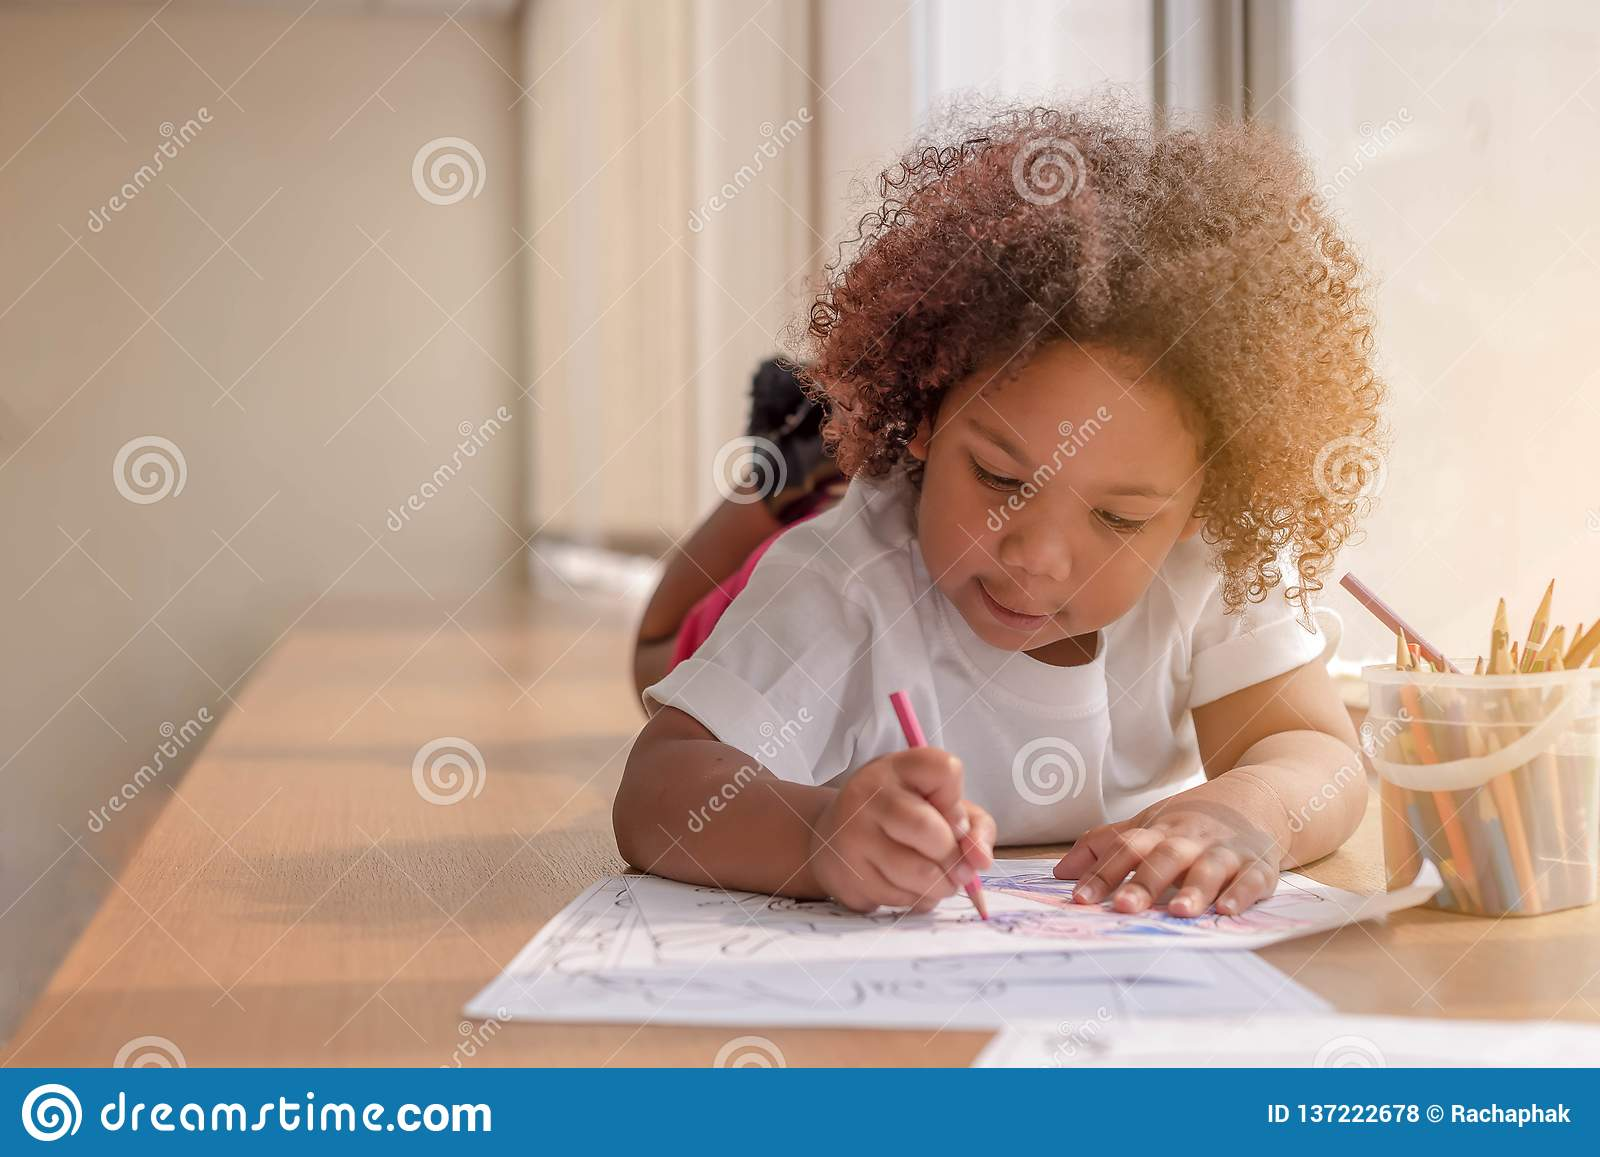 Little toddler girl laying down concentrate on drawing. Mix African girl learn and play in the pre-school class. Children enjoy